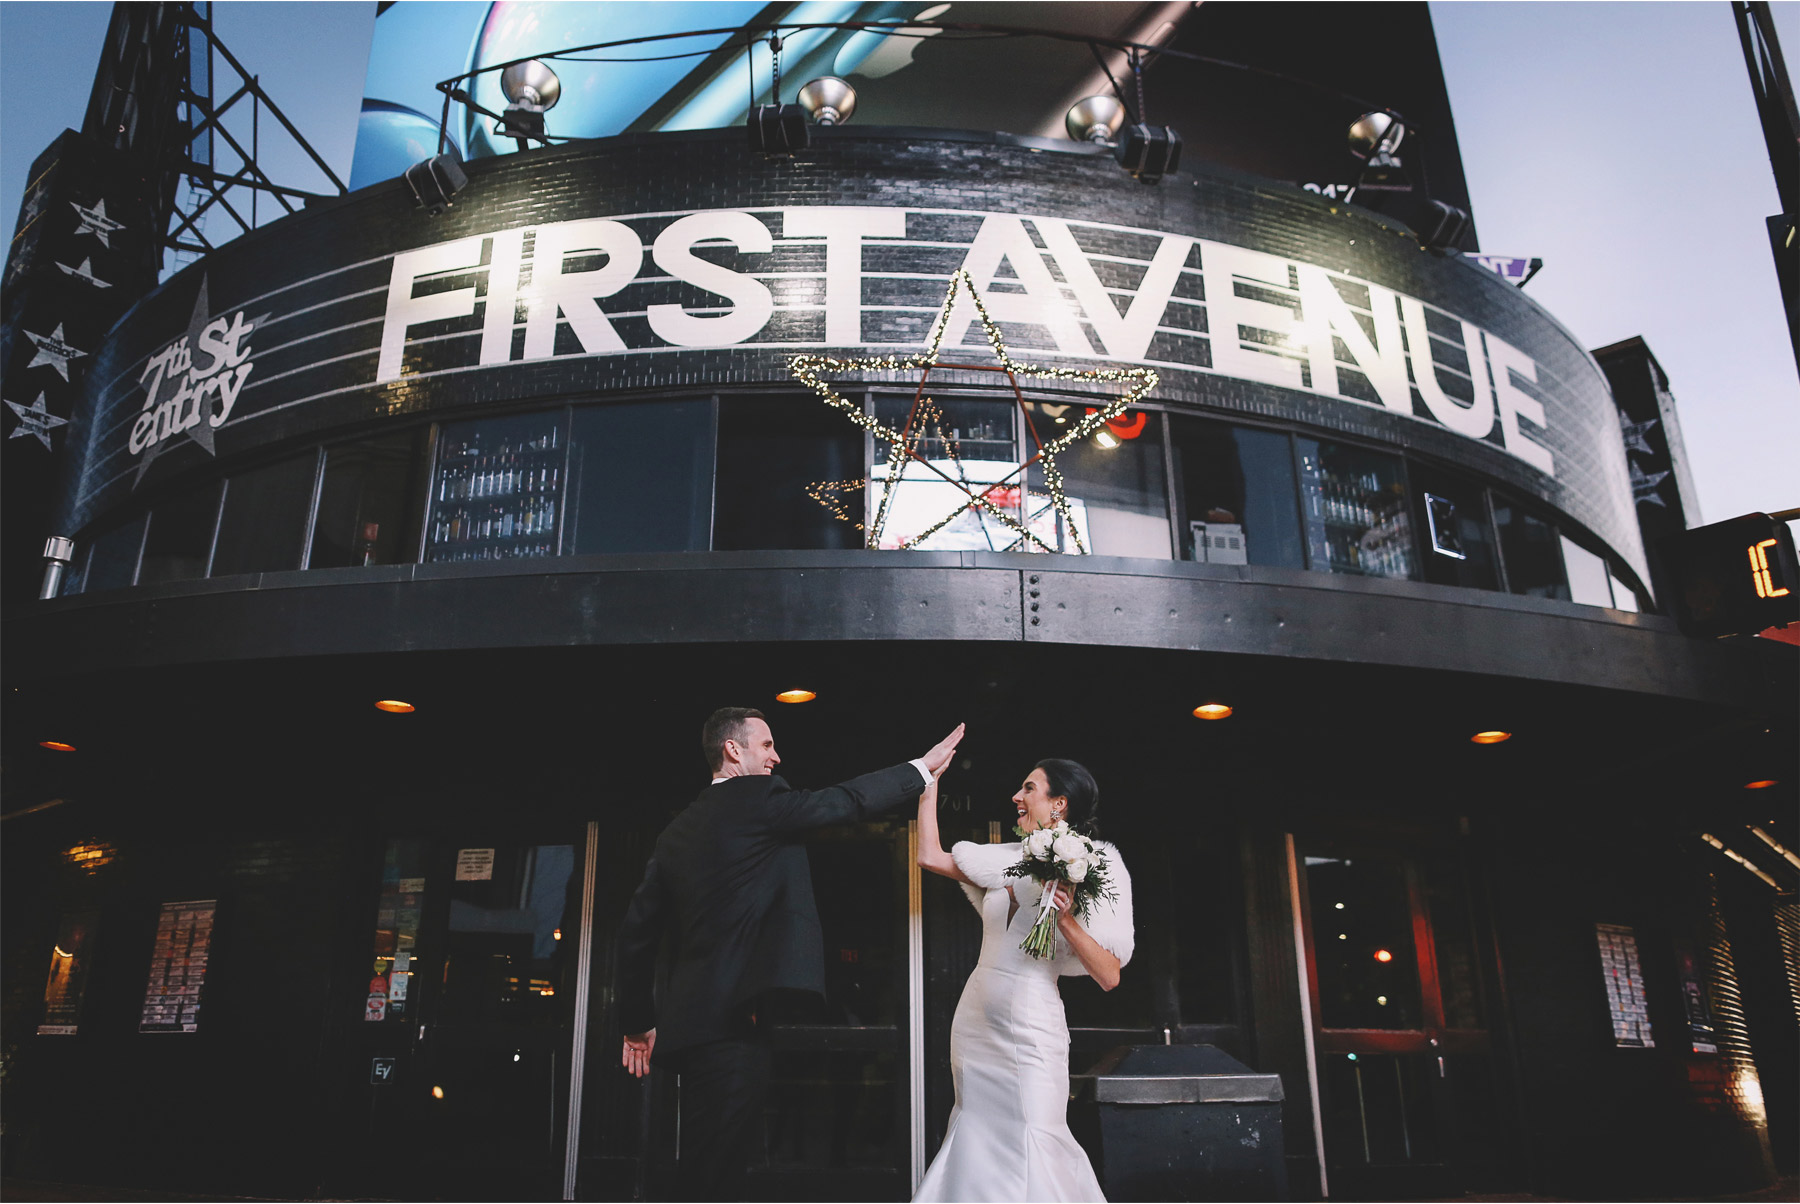 15-Minneapolis-Minnesota-Wedding-Photographer-Andrew-Vick-Photography-Winter-Bride-and-Groom-Downtown-First-Ave-Allison-and-Steve.jpg